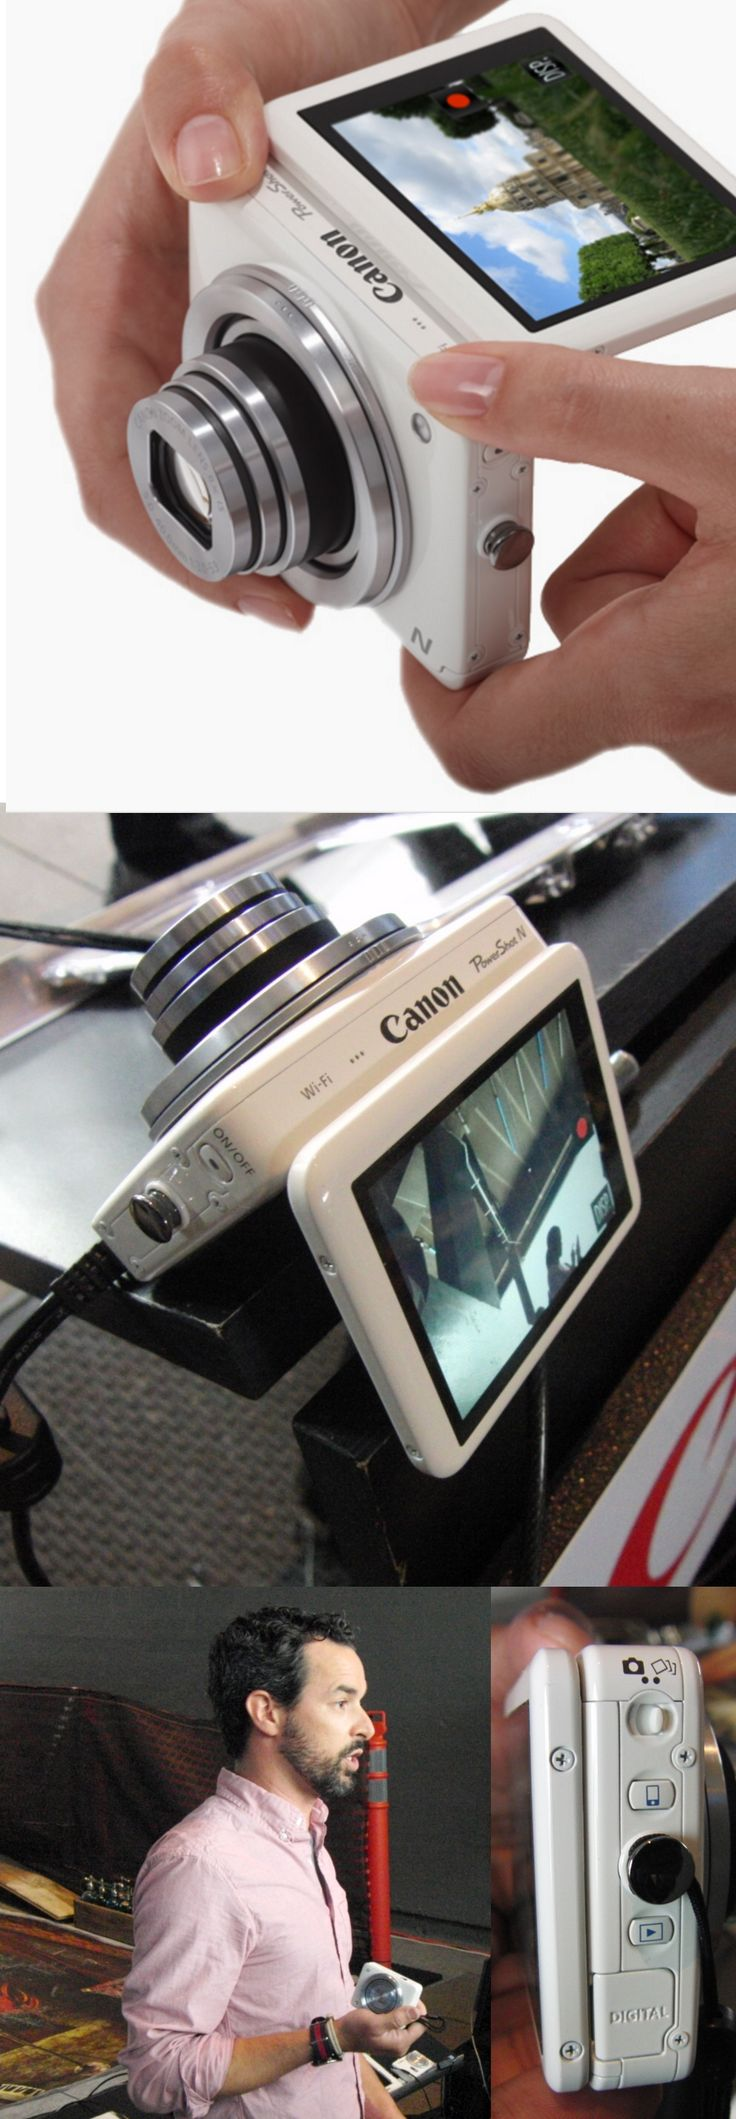 Canon set up shop on New York's above-ground High Line Park to showcase its PowerShot line of Wi-Fi-enabled digital cameras. Instagram wiz Brian DiFeo (@Brian Flanagan Flanagan DiFeo Instagram: bridif) showed off the PowerShot N1, a 12-megapixel palm-size unit with 8X optical zoom which can wirelessly send images to a smartphone or to social media sites. You can snap an image by touching the 2.8-inch touch screen, which can swivel up.